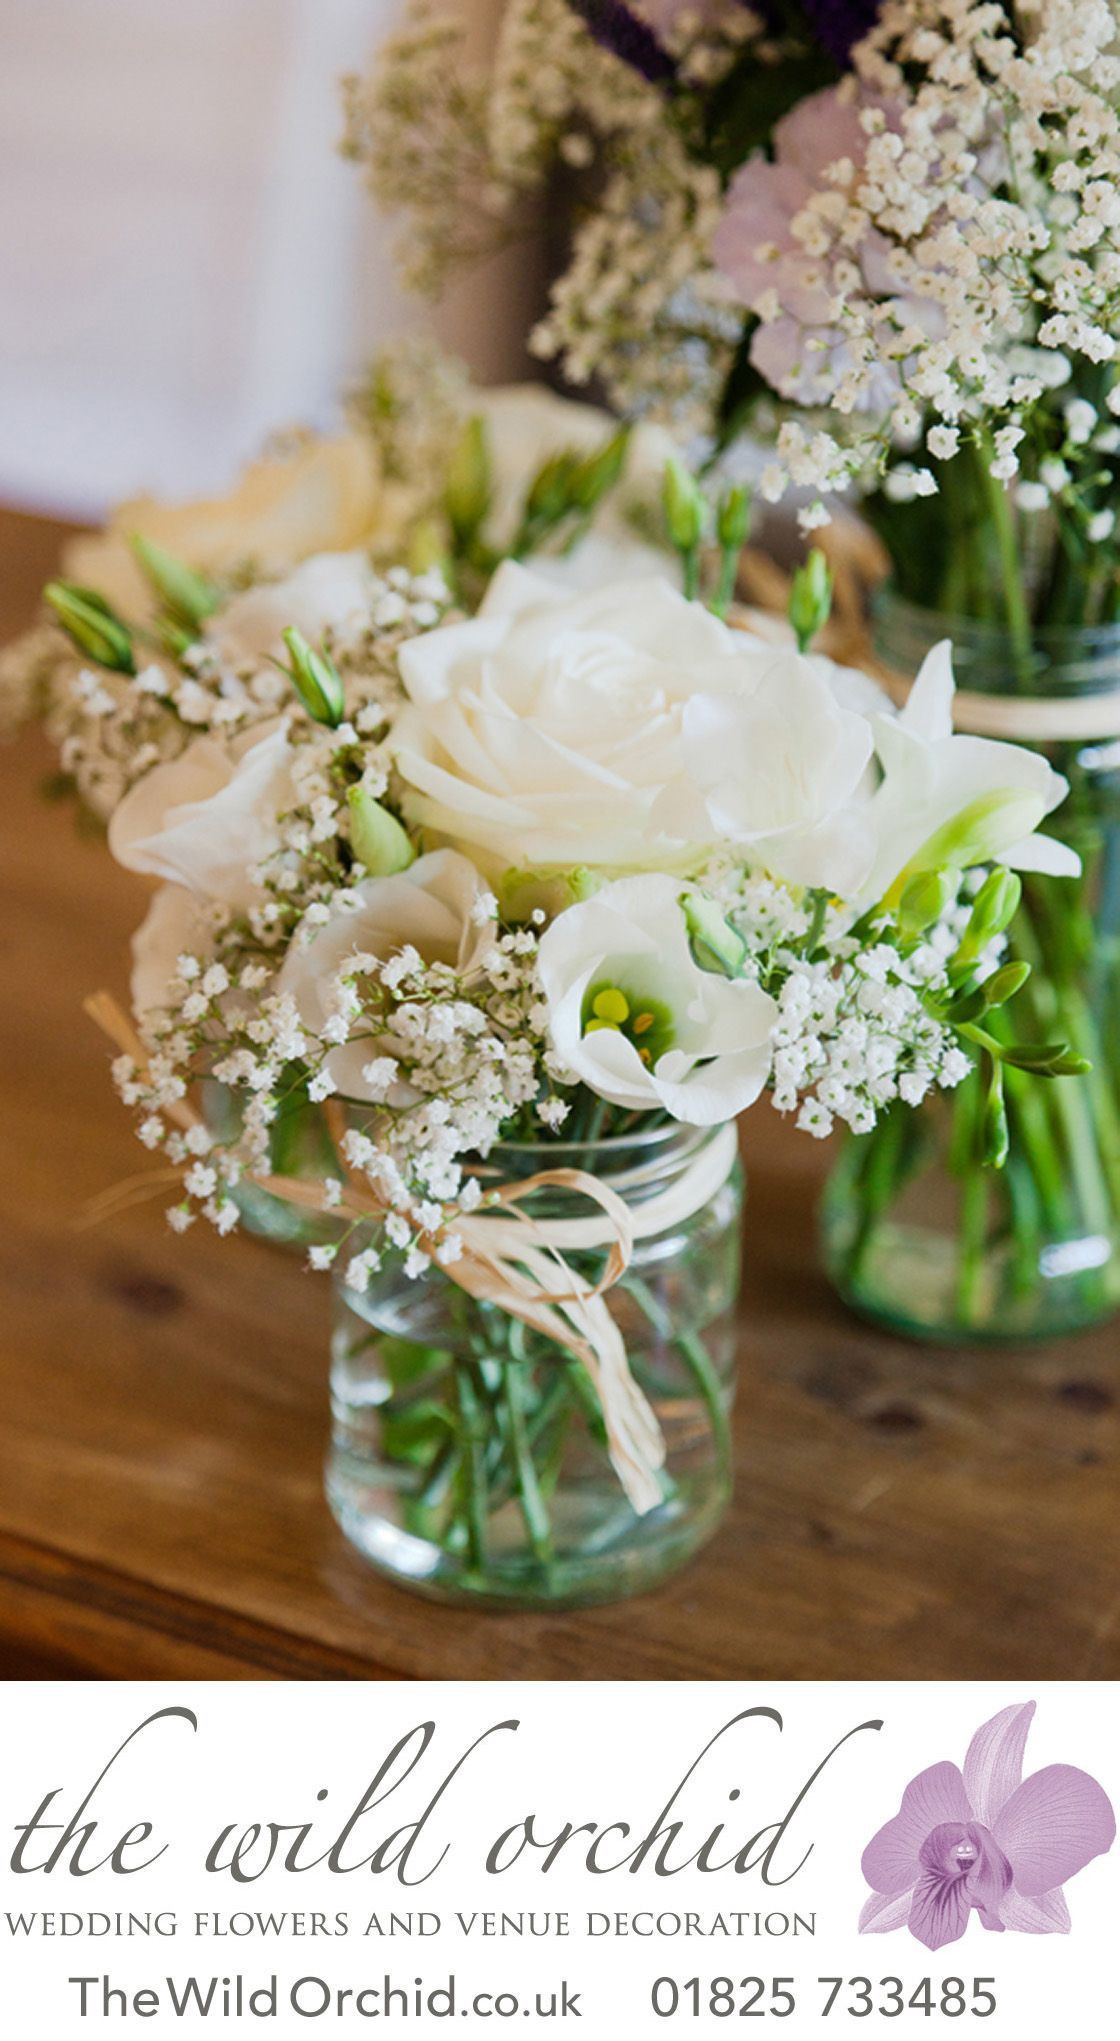 A trio of clear glass jam jars with natural raffia ribbon filled with delicate white flowers with touches of blue